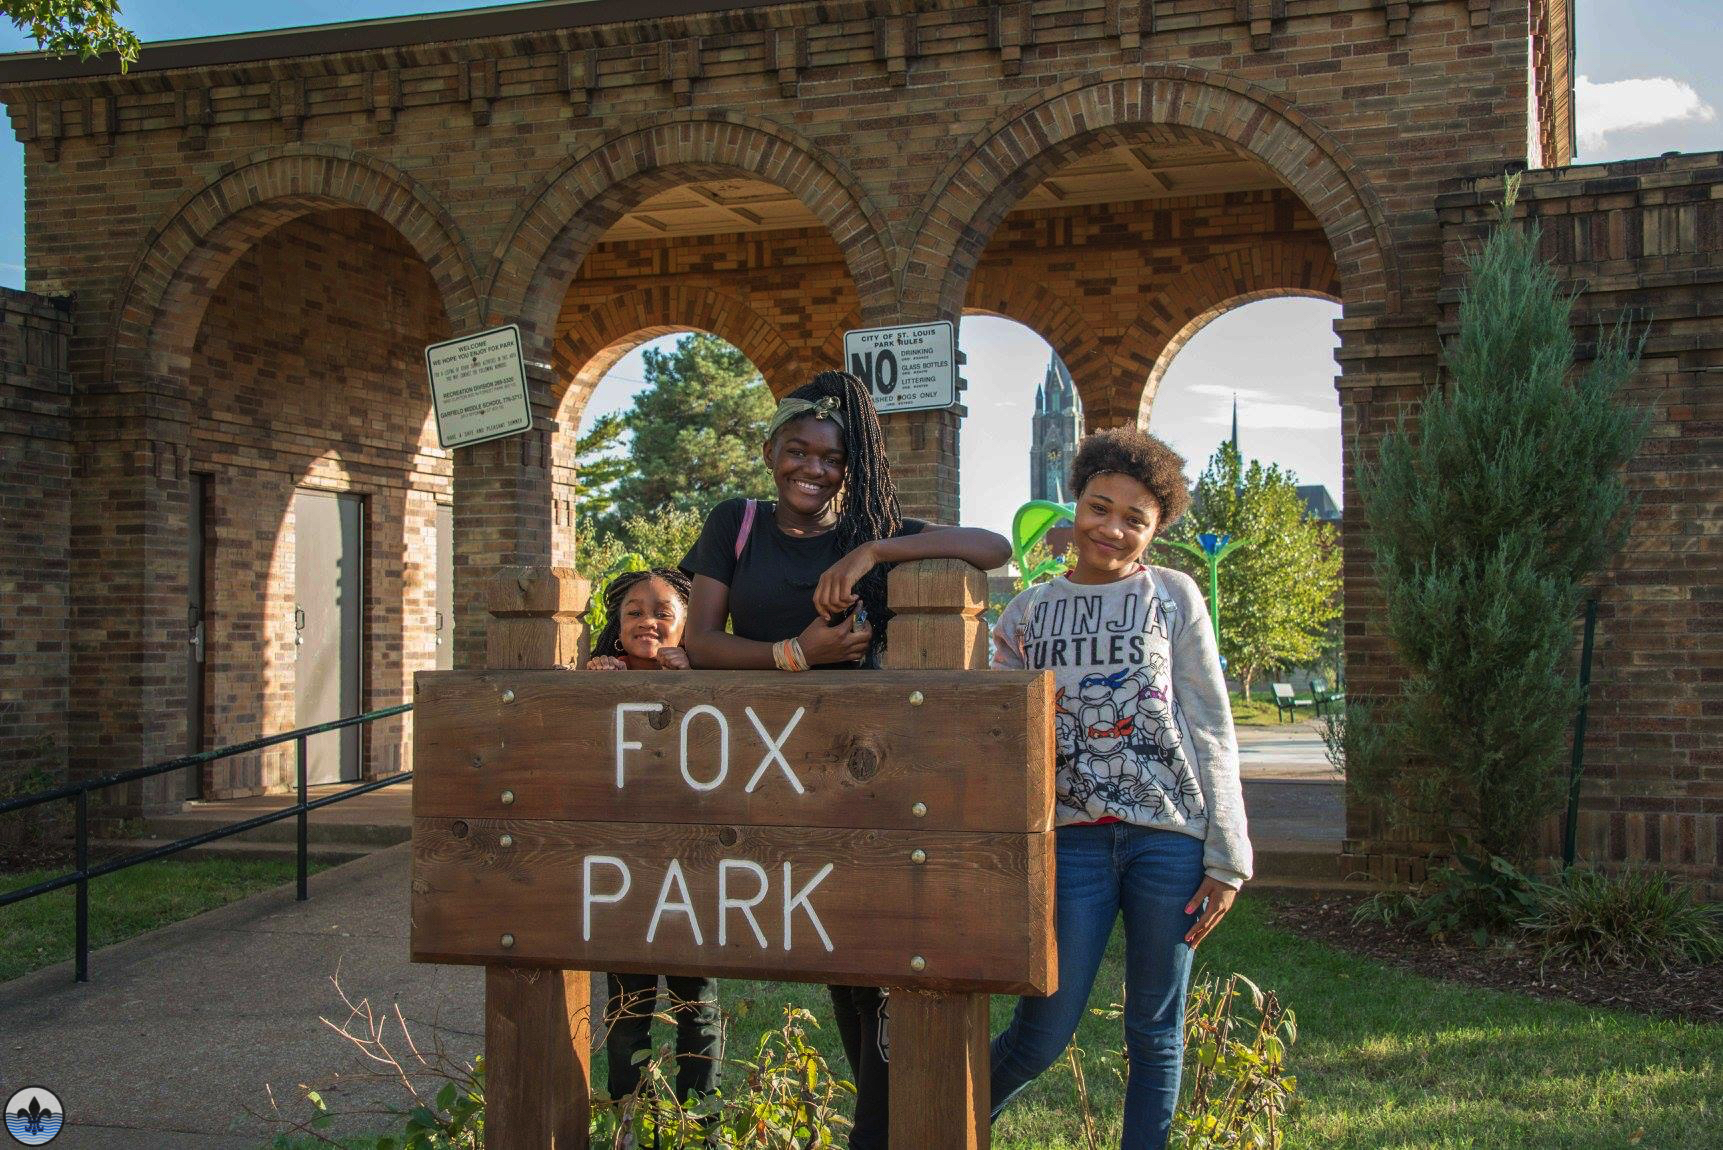 Photo Flood 62: Fox Park